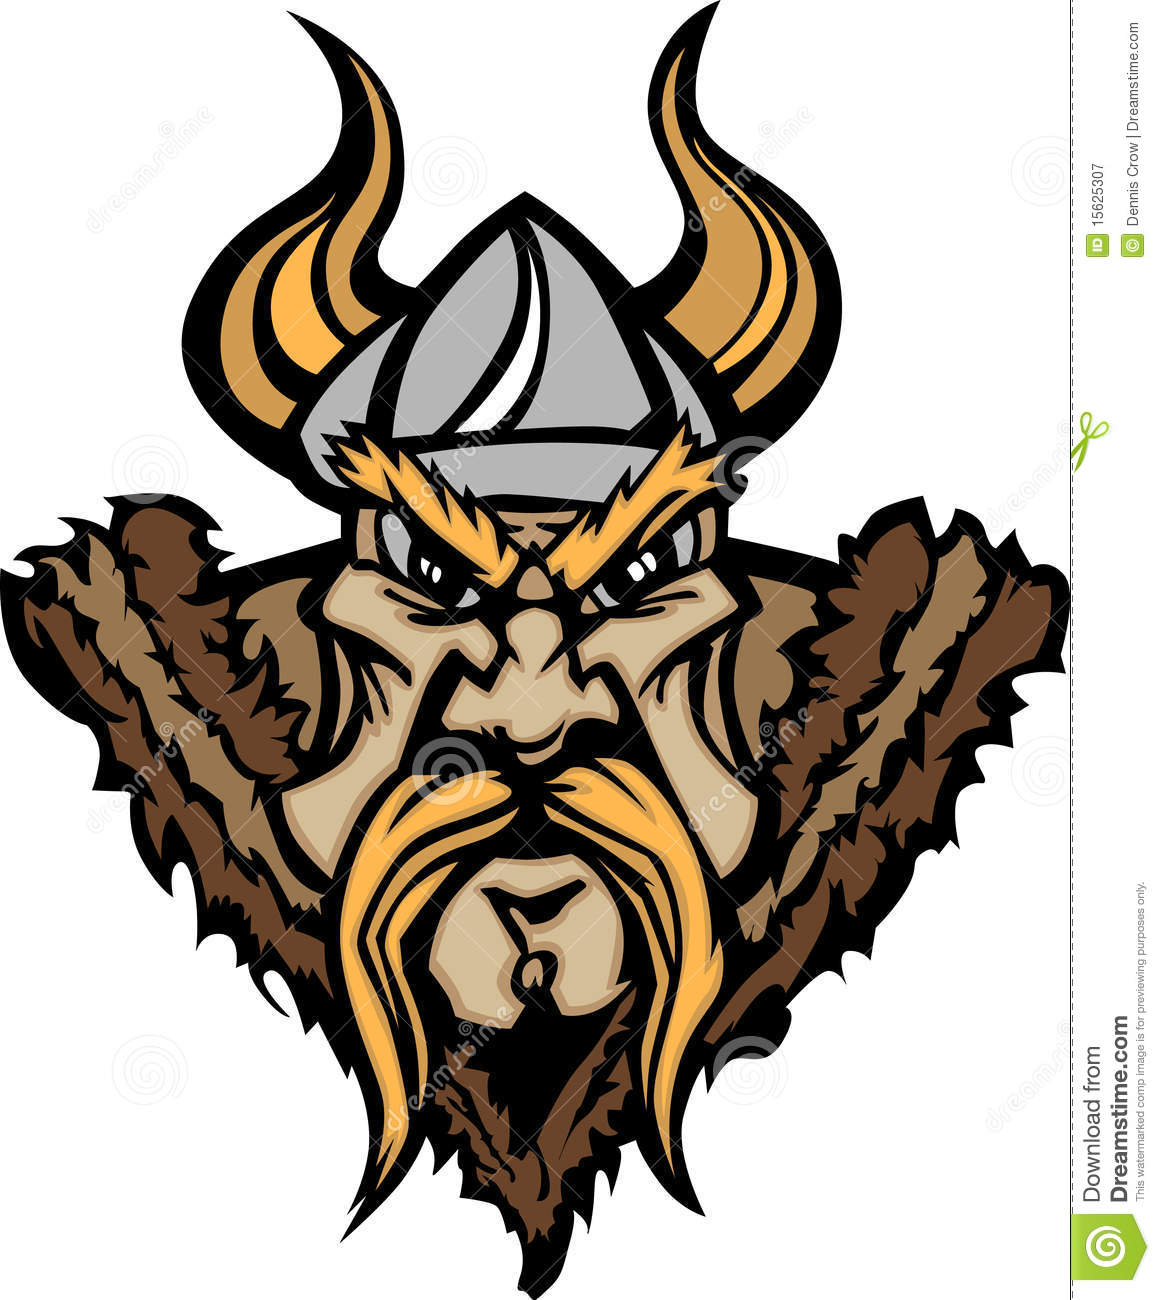 viking barbarian mascot cartoon logo royalty free stock. Black Bedroom Furniture Sets. Home Design Ideas